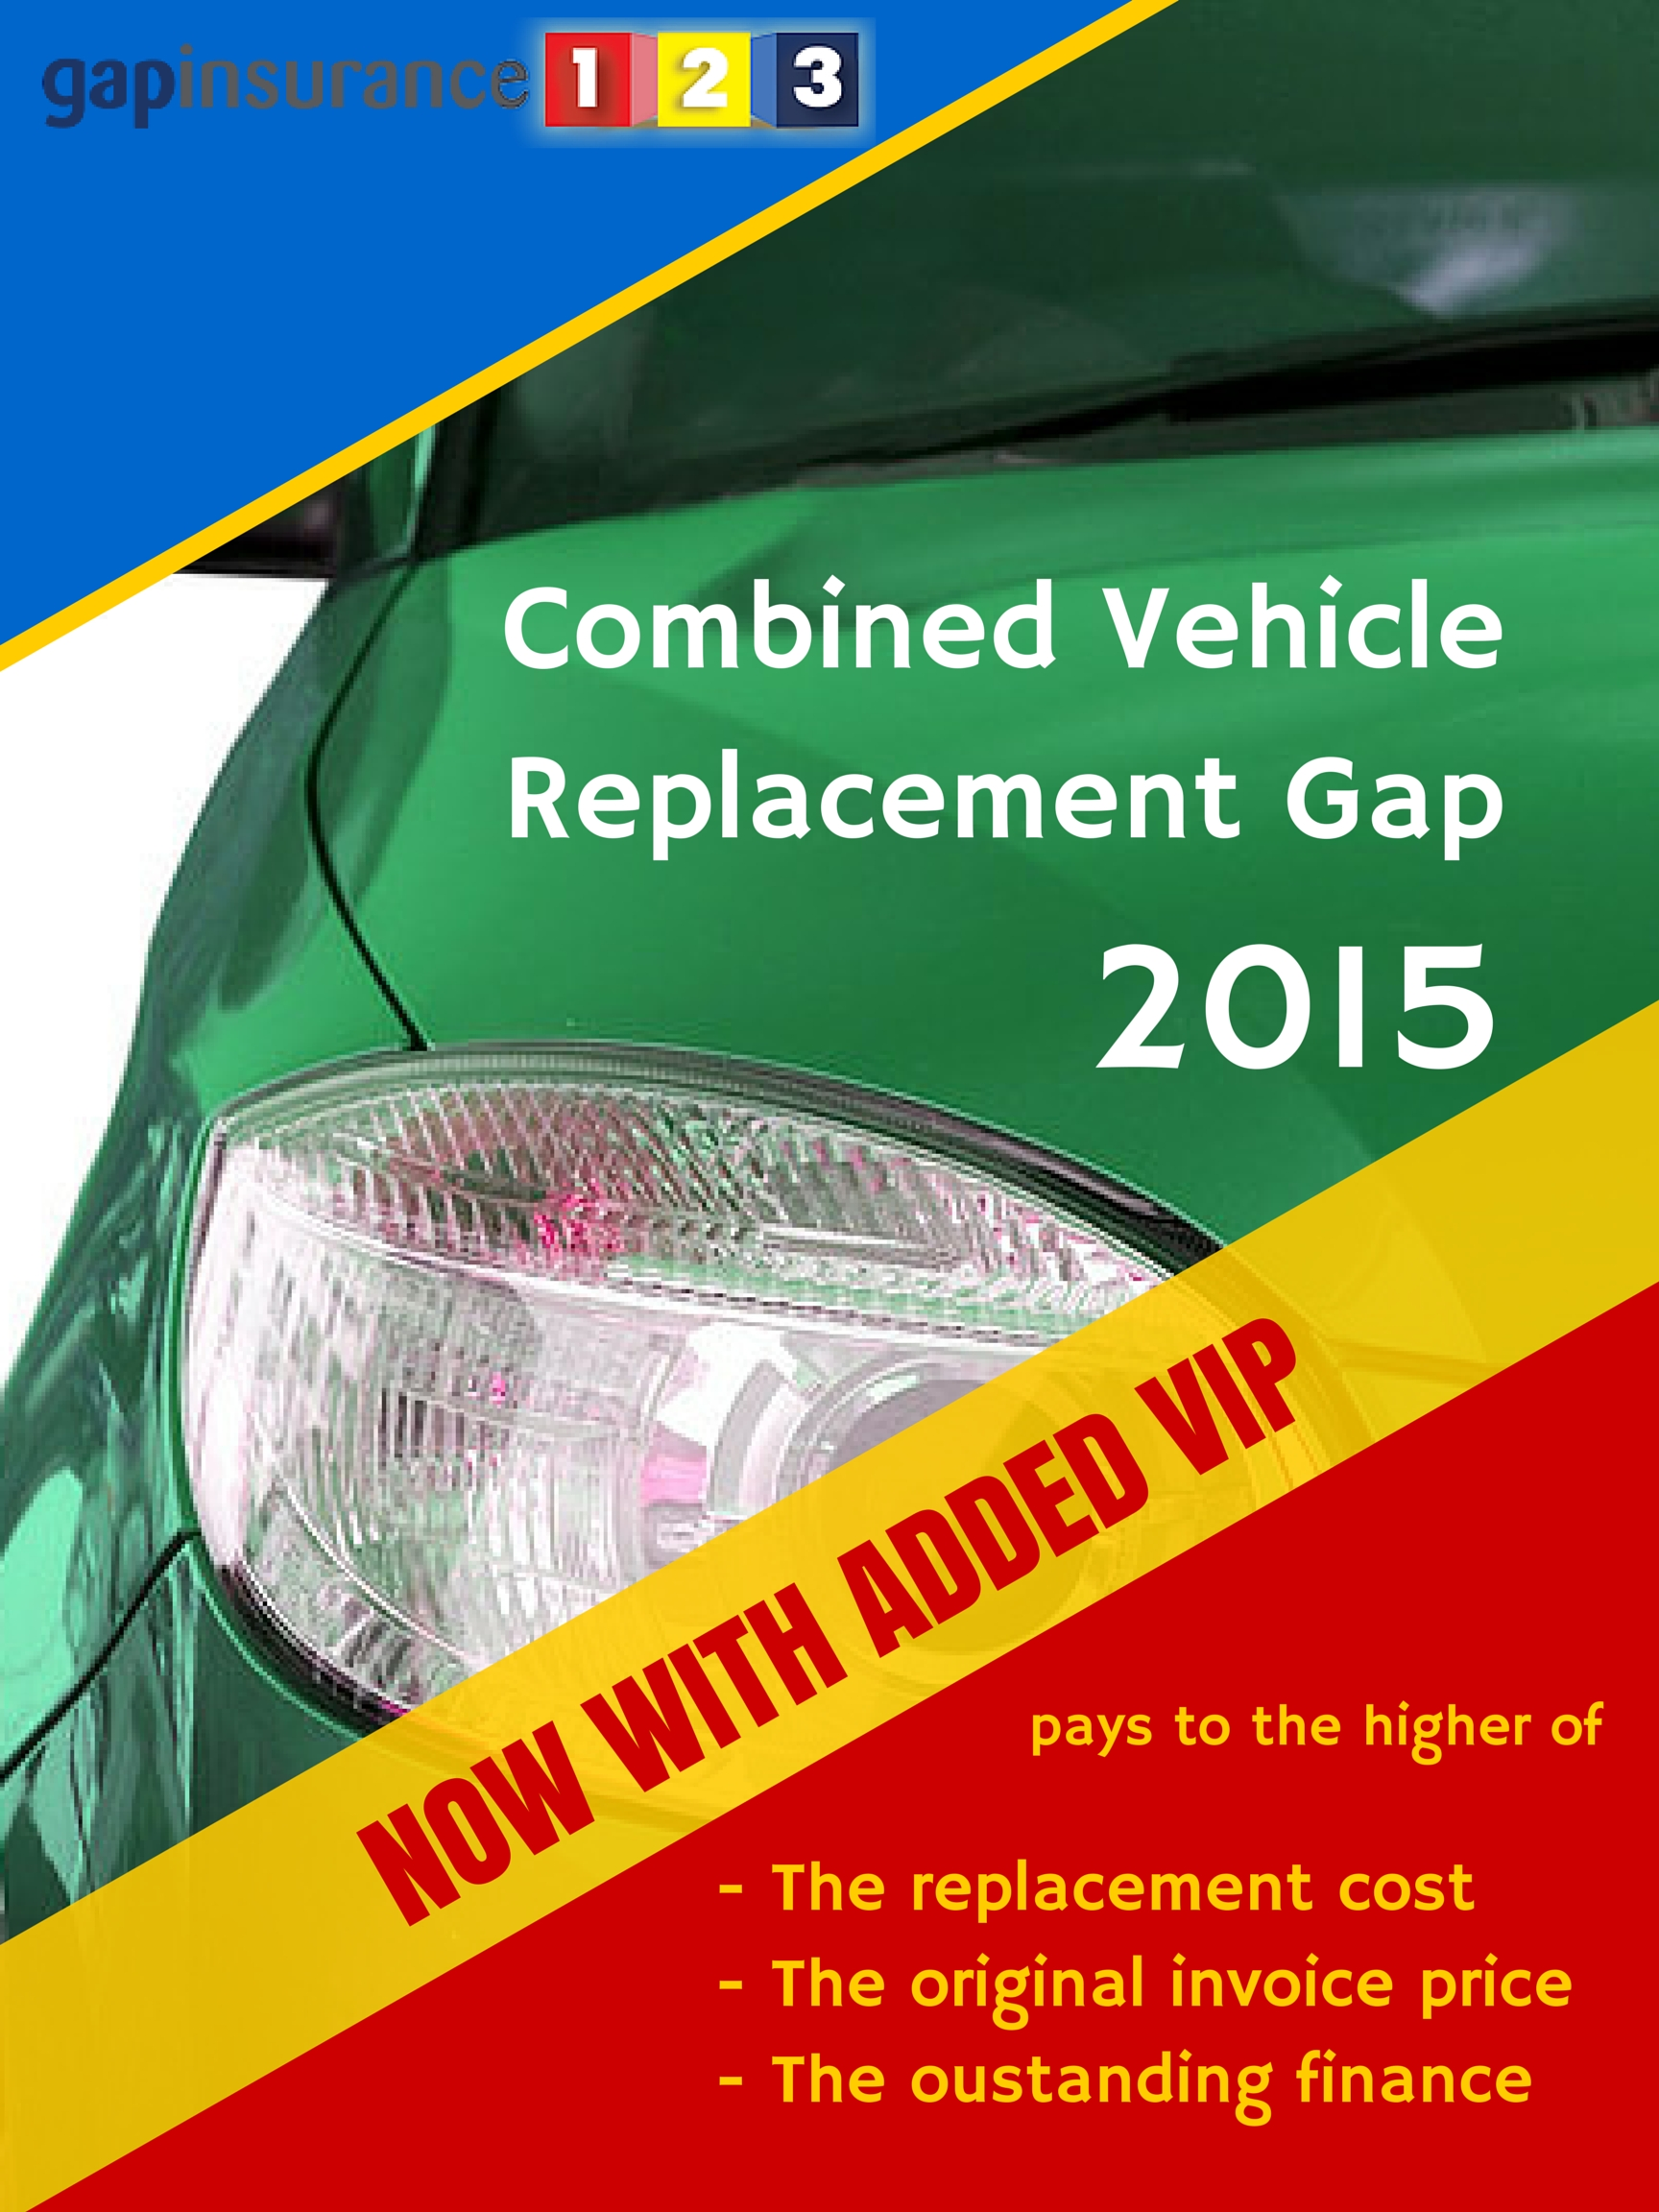 all new 2015 combined vehicle replacement gap return to invoice